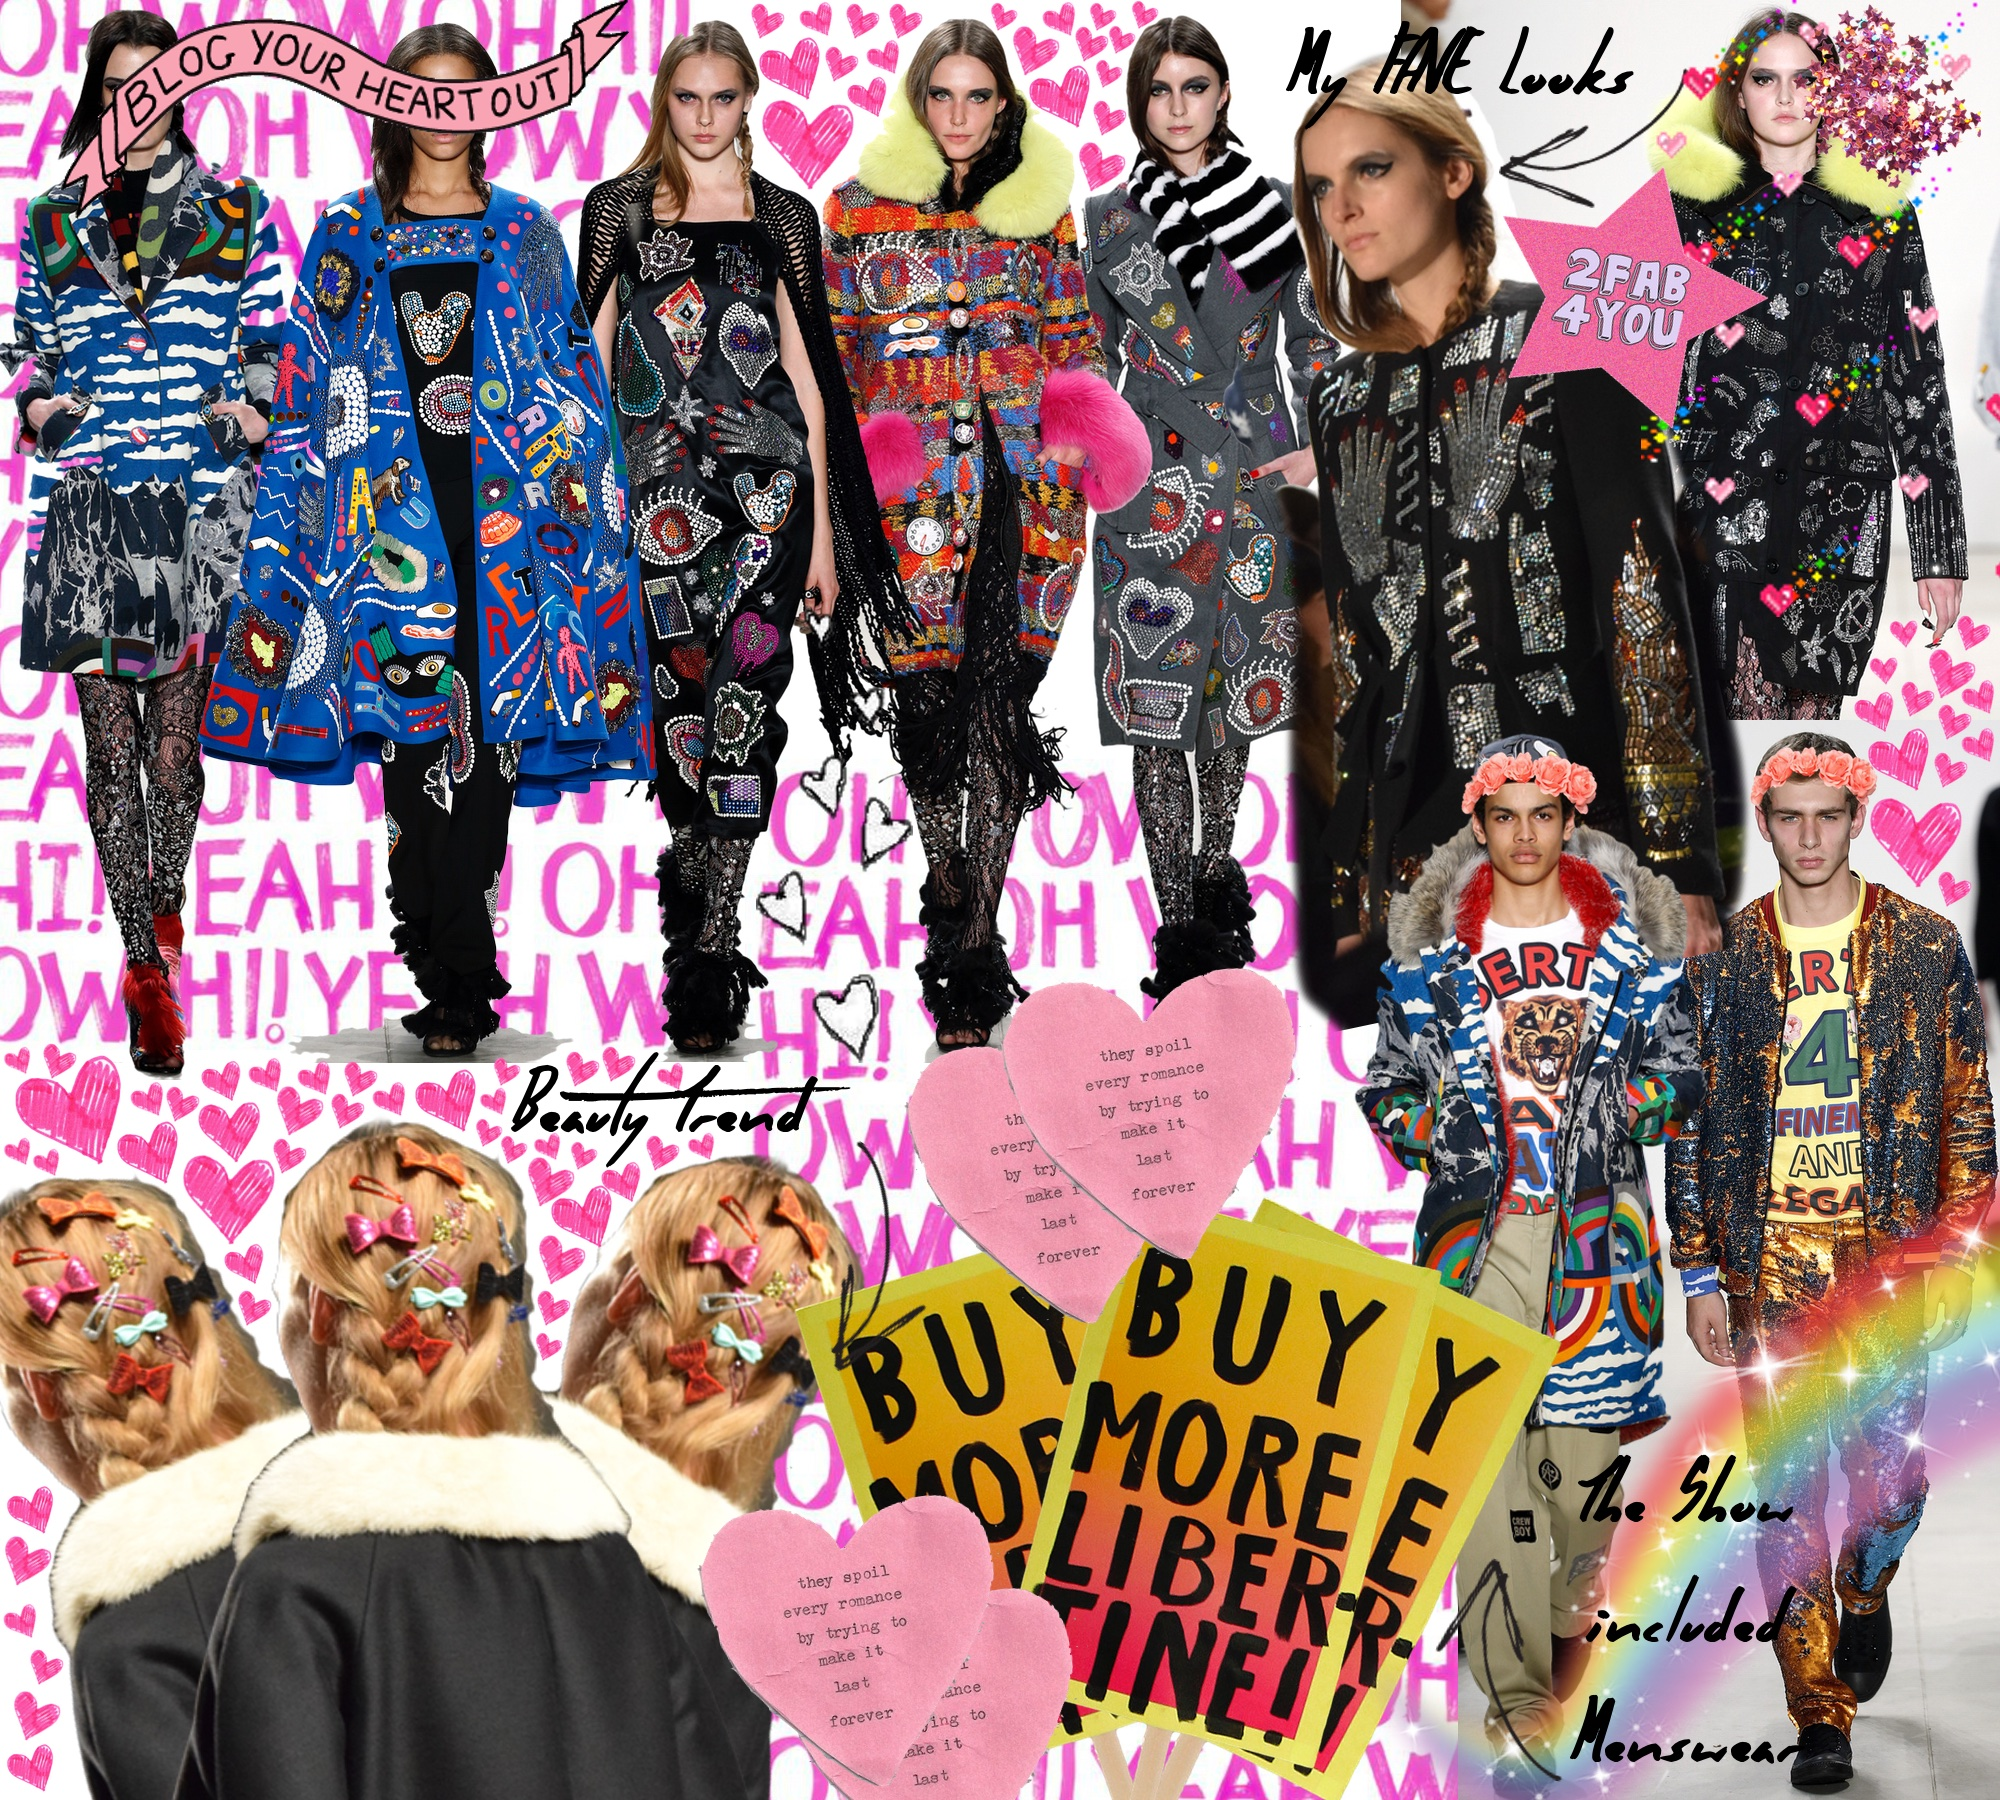 Libertine Fall 2016 Runway Show New York Fashion Week: To Style, With Love